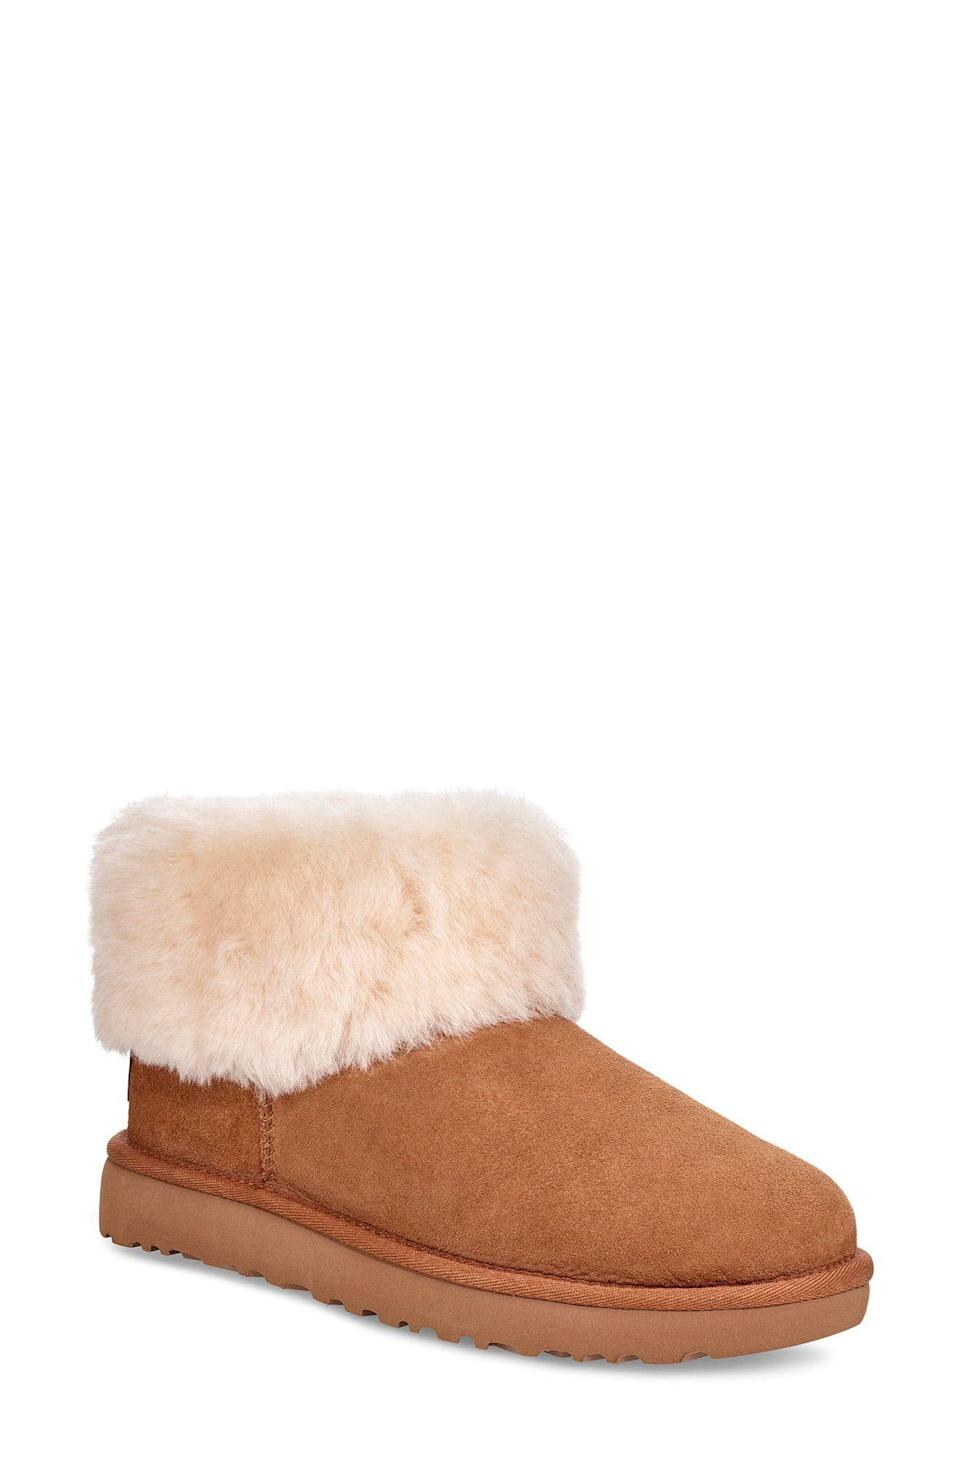 """<p><strong>UGG</strong></p><p>nordstrom.com</p><p><strong>$99.90</strong></p><p><a href=""""https://go.redirectingat.com?id=74968X1596630&url=https%3A%2F%2Fwww.nordstrom.com%2Fs%2Fugg-classic-mini-fluff-genuine-shearling-bootie-women%2F5324753&sref=https%3A%2F%2Fwww.elle.com%2Ffashion%2Fshopping%2Fg34741930%2Fnordstrom-12-days-of-cyber-savings-sale%2F"""" rel=""""nofollow noopener"""" target=""""_blank"""" data-ylk=""""slk:SHOP"""" class=""""link rapid-noclick-resp"""">SHOP</a></p><p><strong><del>$160</del></strong><strong> $32 (34% off)</strong></p>"""